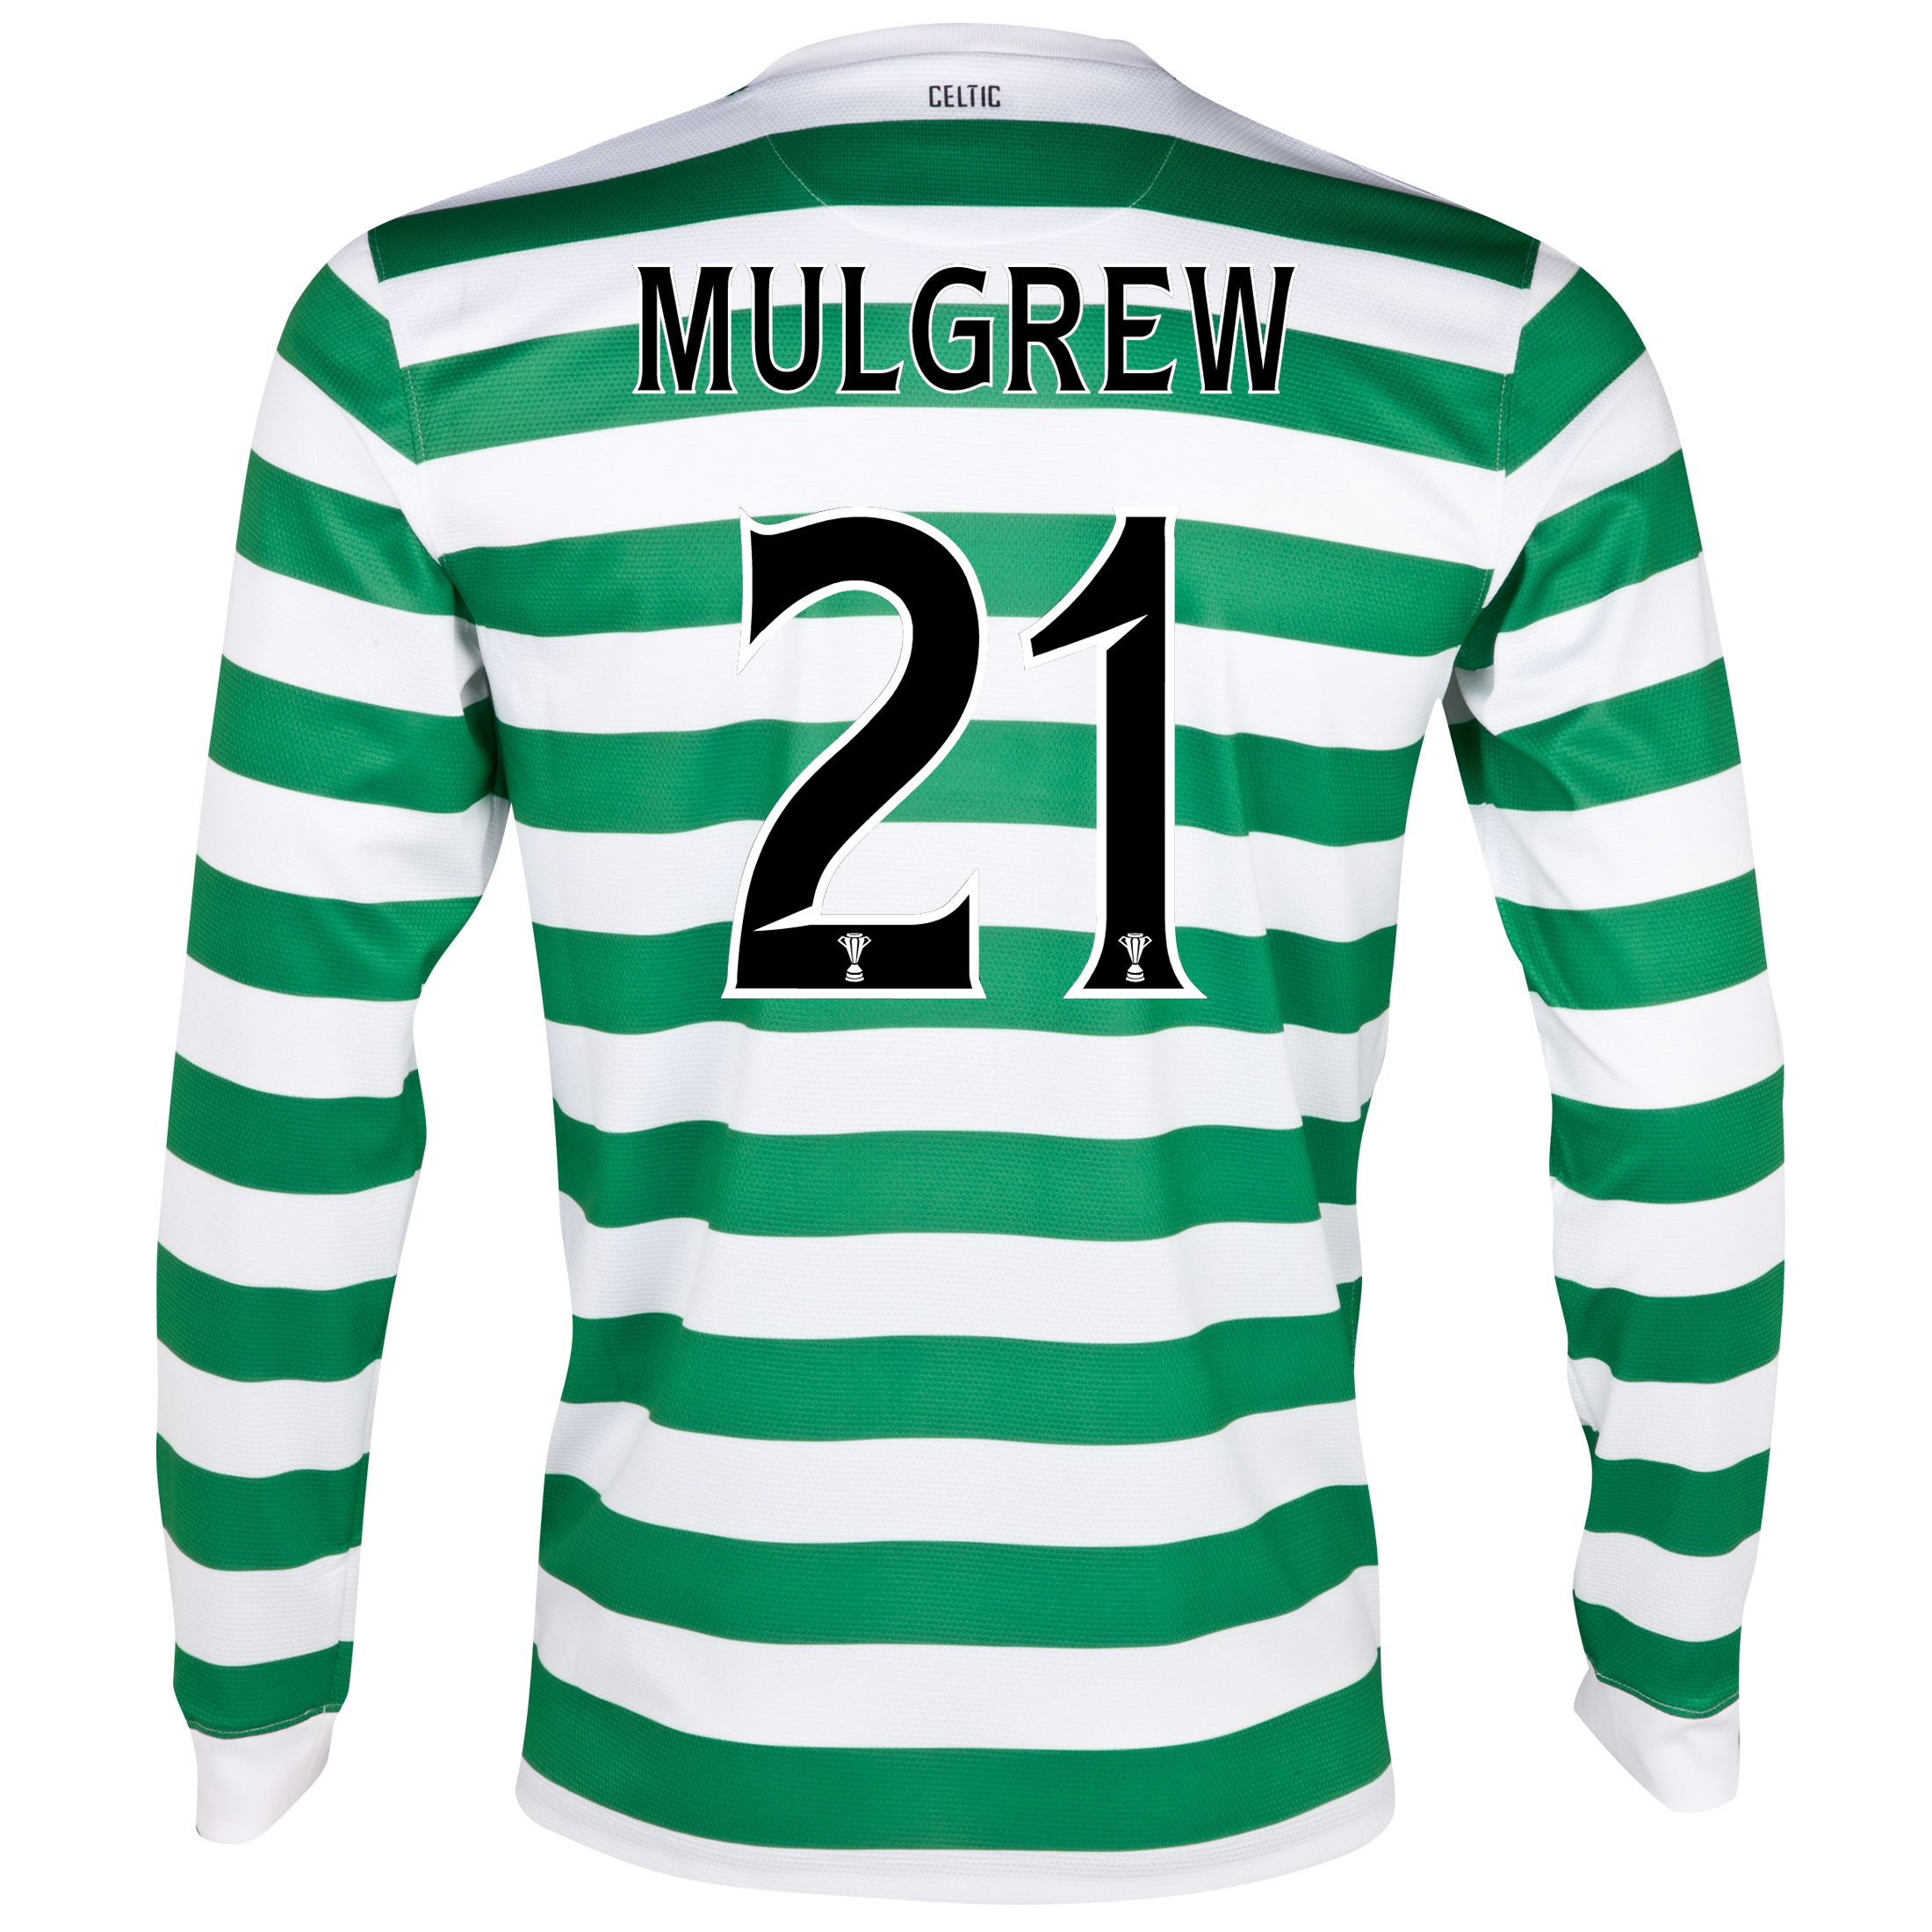 Celtic Home Shirt 2012/13 - Long Sleeved - No Sponsor with Mulgrew 21 printing